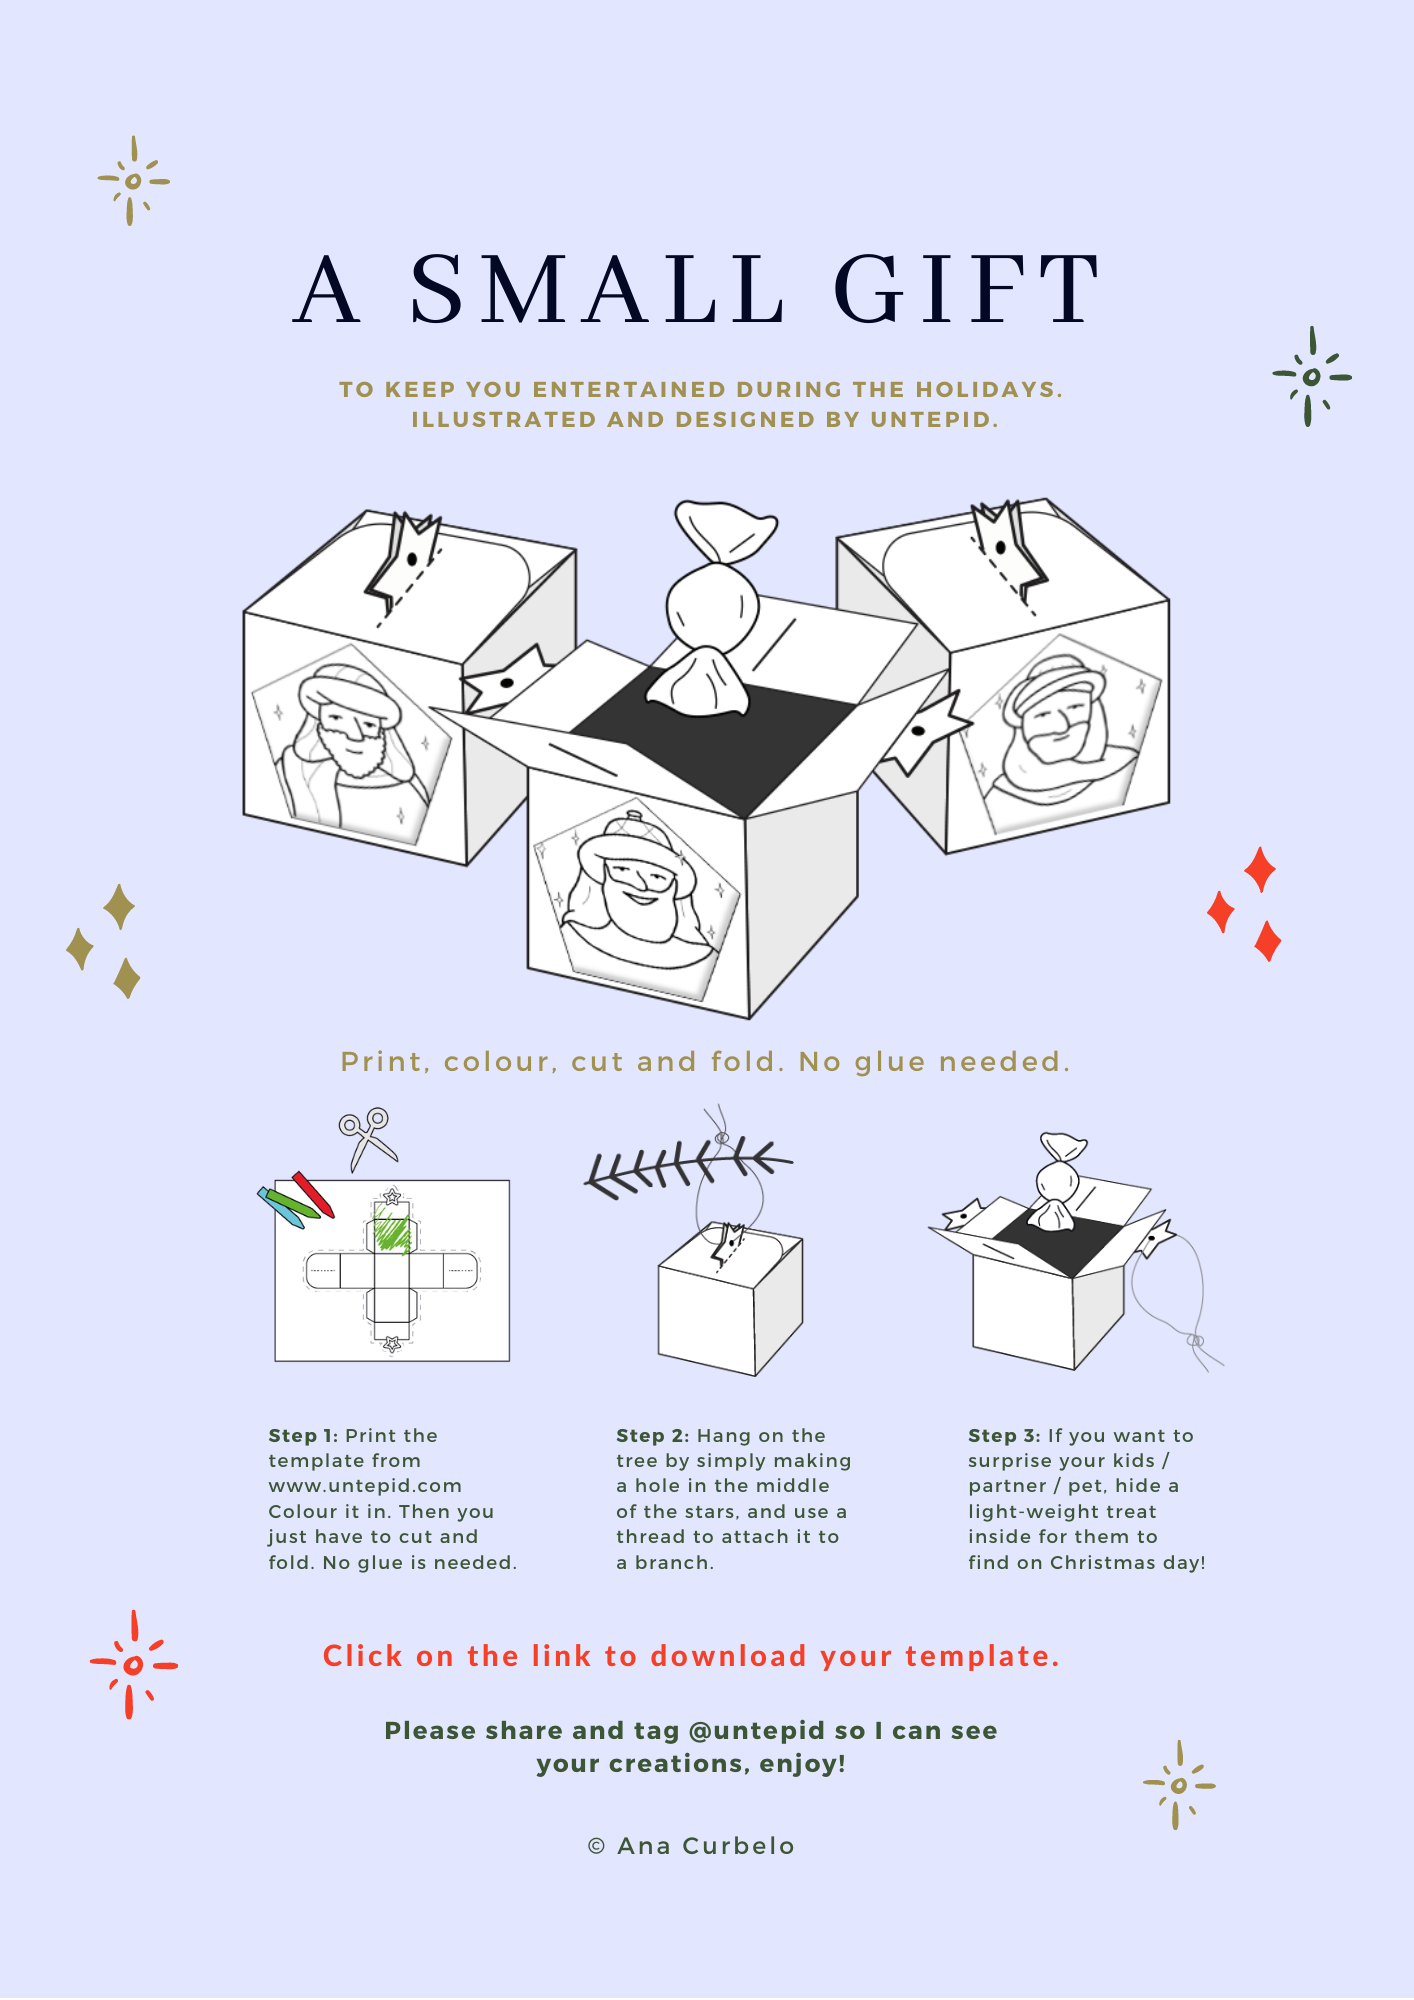 Free download - For kids, a small gift